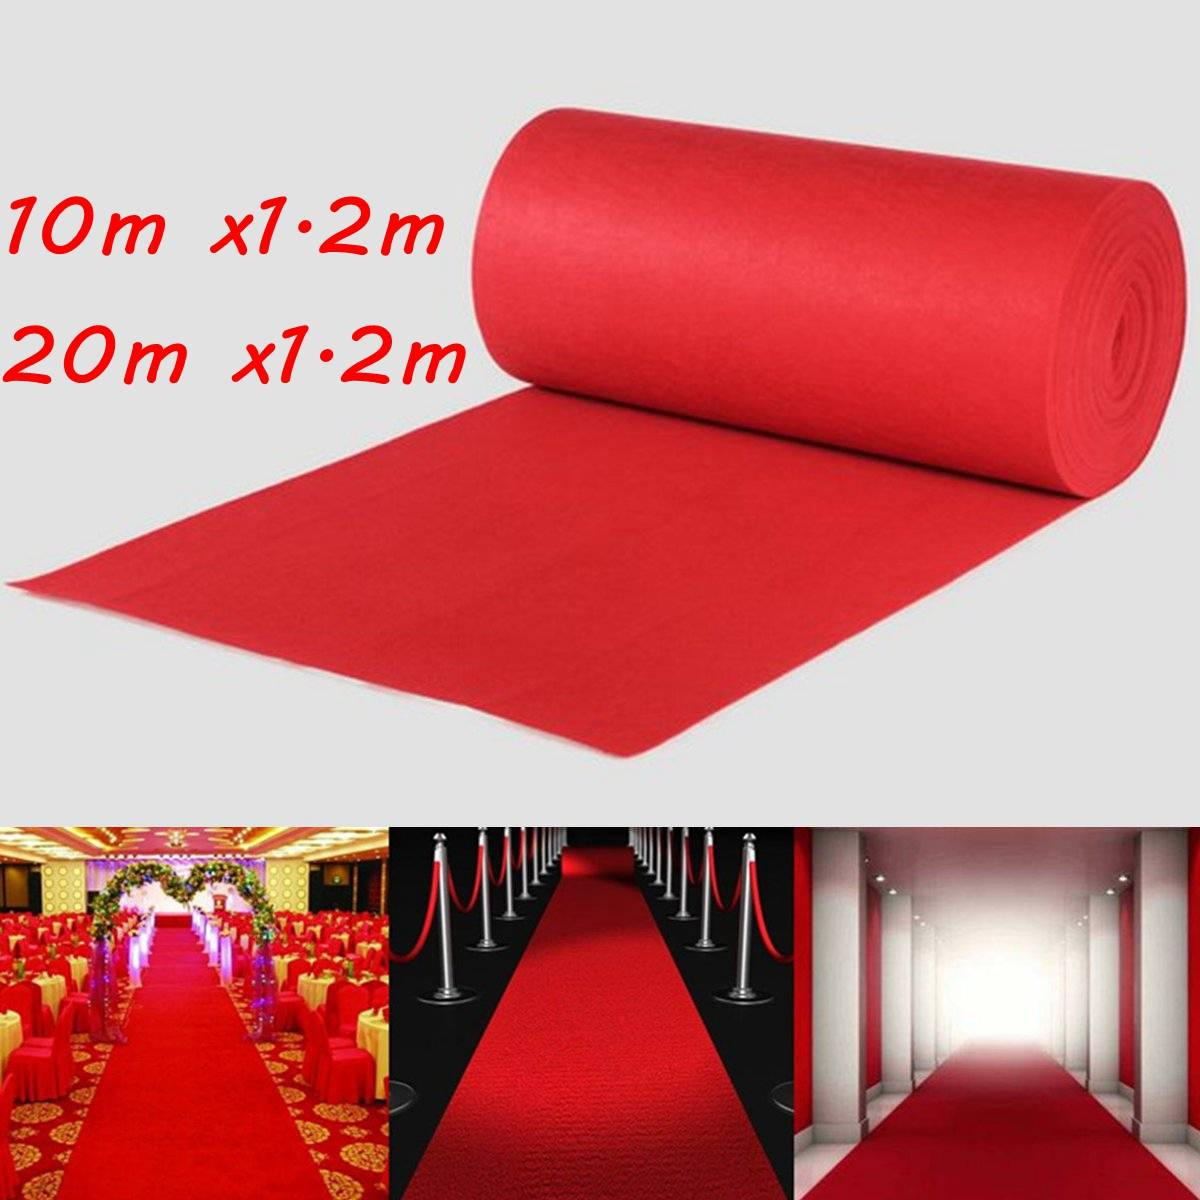 Wedding Aisle Floor Runner Carpet Polyester Large Red Carpet Rug Hollywood Awards Events Wedding Party Events Decoration 10/20M